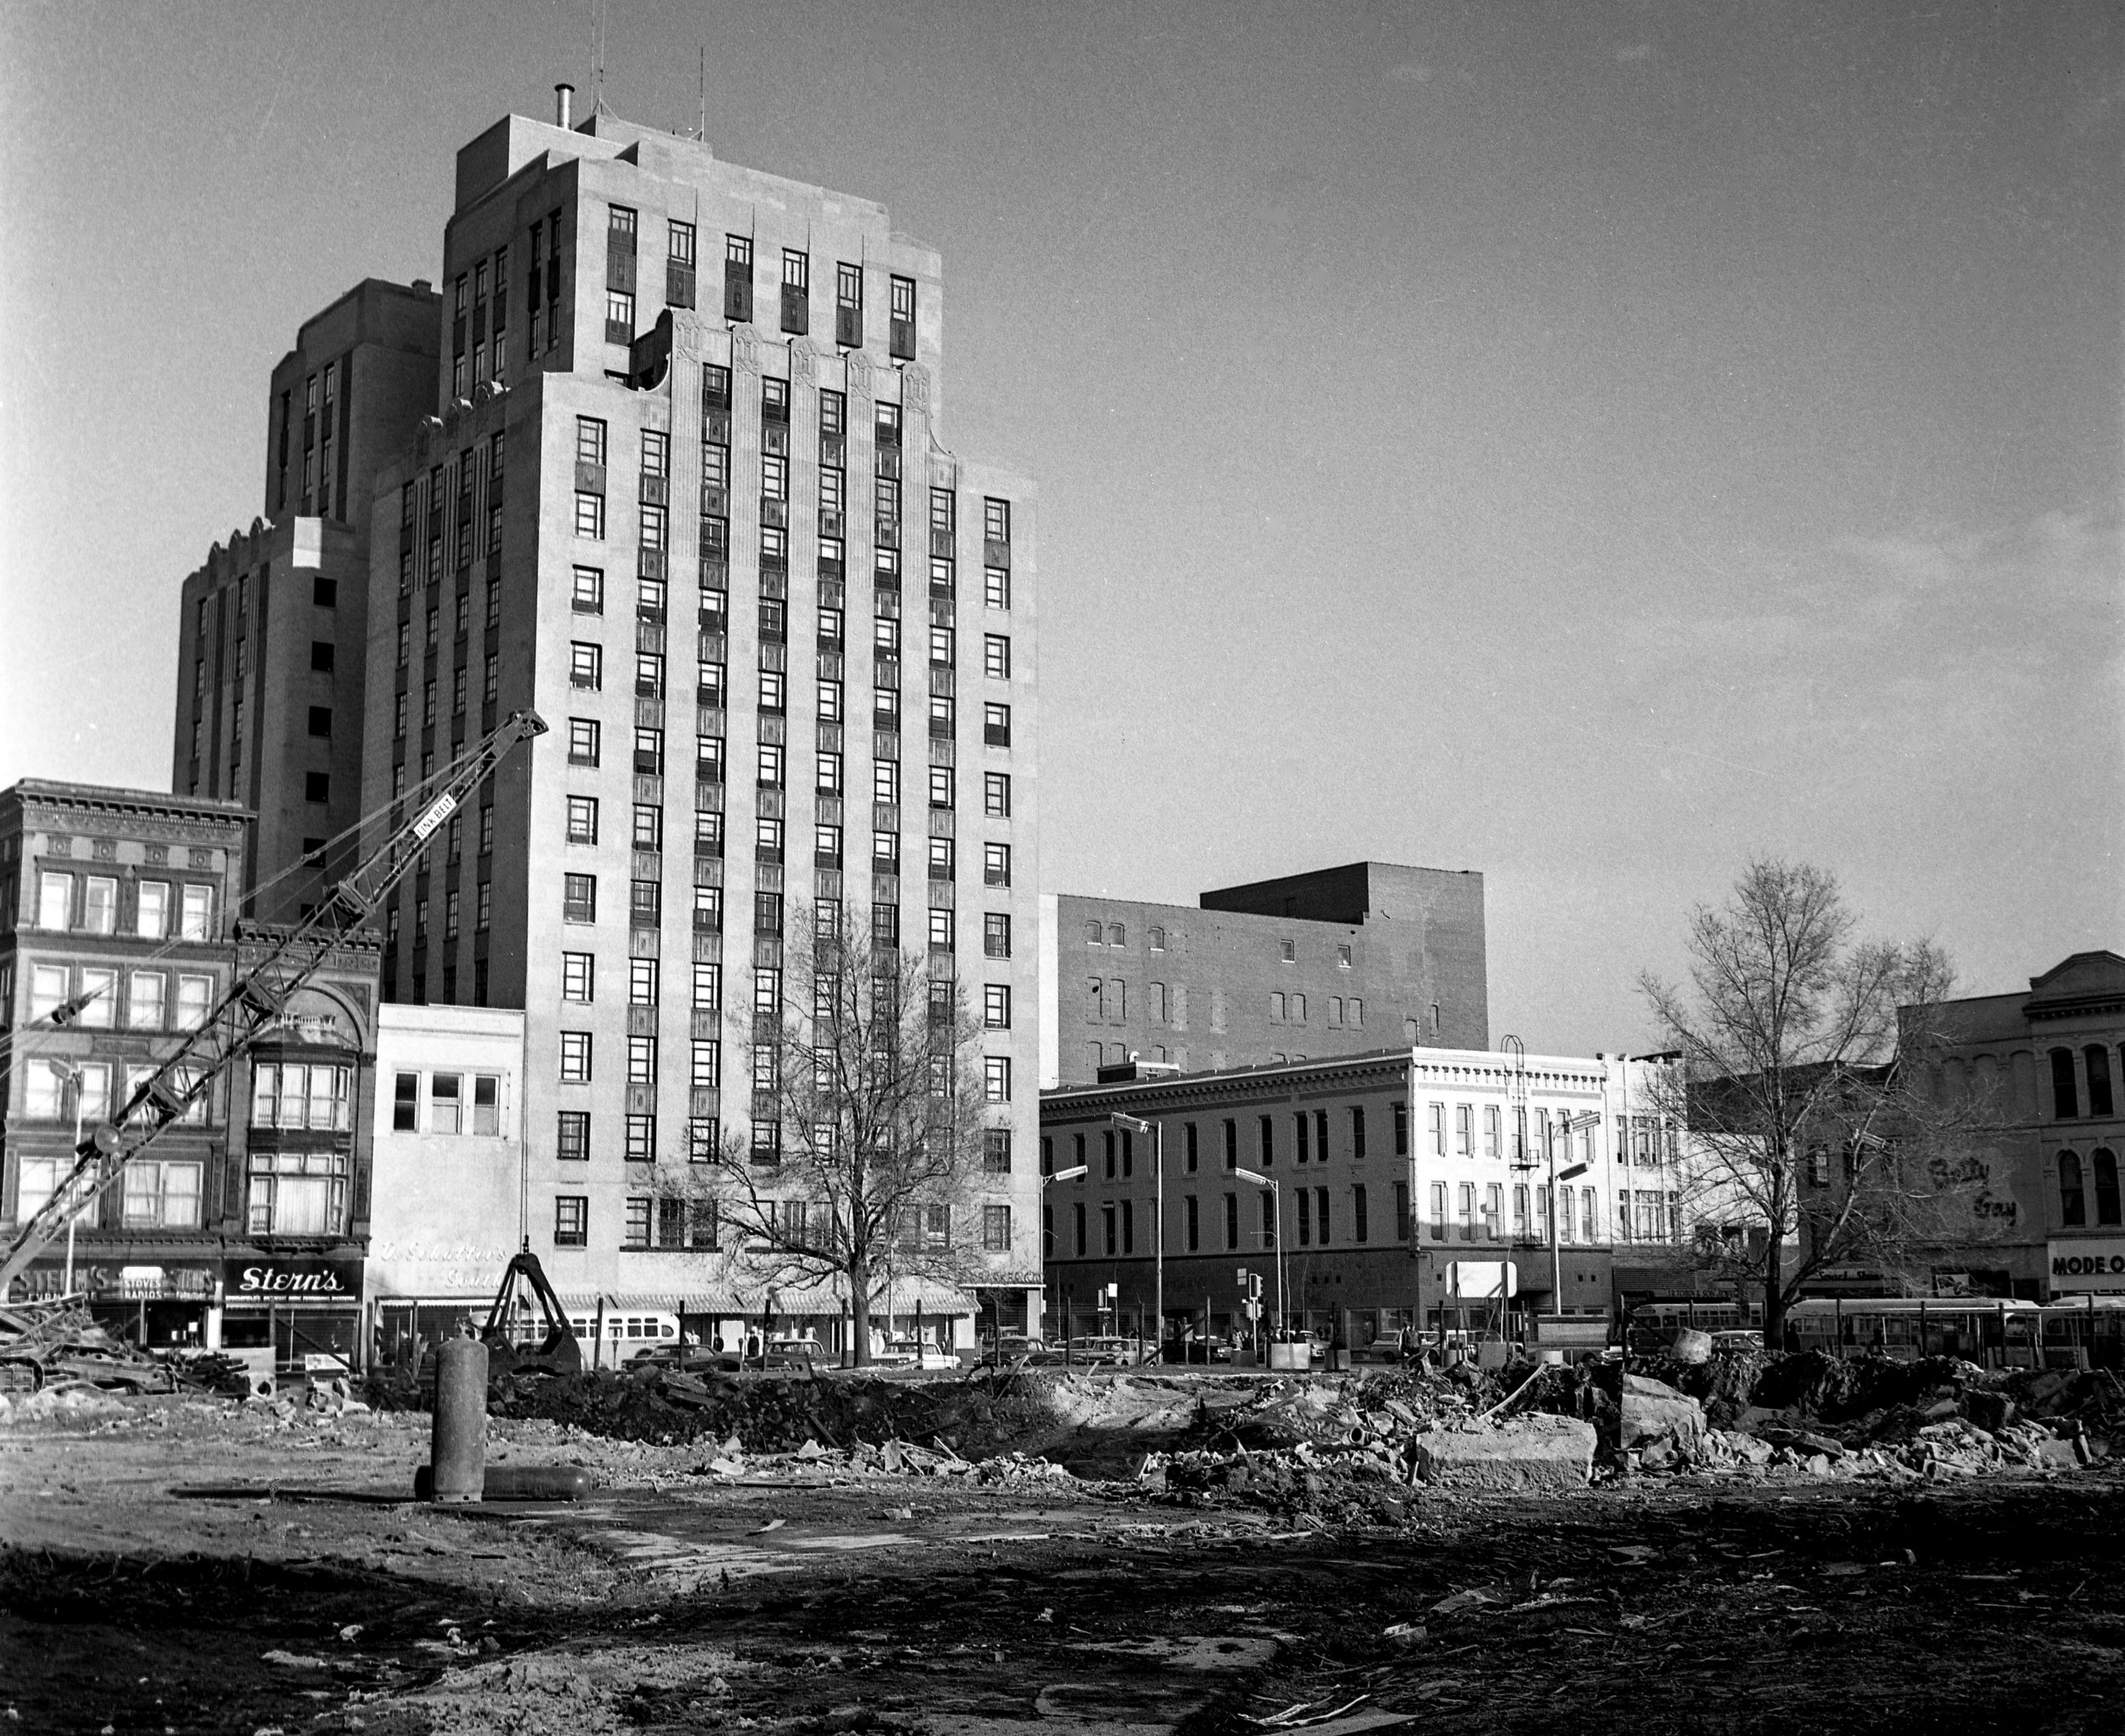 Downtown Springfield public square with Old State Capitol demolished before restoration, April 8, 1966. File/The State Journal-Register#picpast #spihistory; architecture; downtown; public squarePublished as Picturing the Past, April 1, 2018.Today is April Fool's Day, but if you notice something missing in a view of the downtown square on April 8, 1966, it's not a joke. The Old State Capitol is really gone. It was a sign that one of the most consequential changes made to downtown Springfield was well under way. The exterior of the former State Capitol building, which more recently had served as the Sangamon County Courthouse, had been disassembled stone-by-stone and preserved, while the inside was demolished. Soon, work would begin on excavating the site to make way for underground parking and office space. Then the building would be reconstructed to its appearance when Abraham Lincoln served as a state legislator. The process took three years. [File/The State Journal-Register]